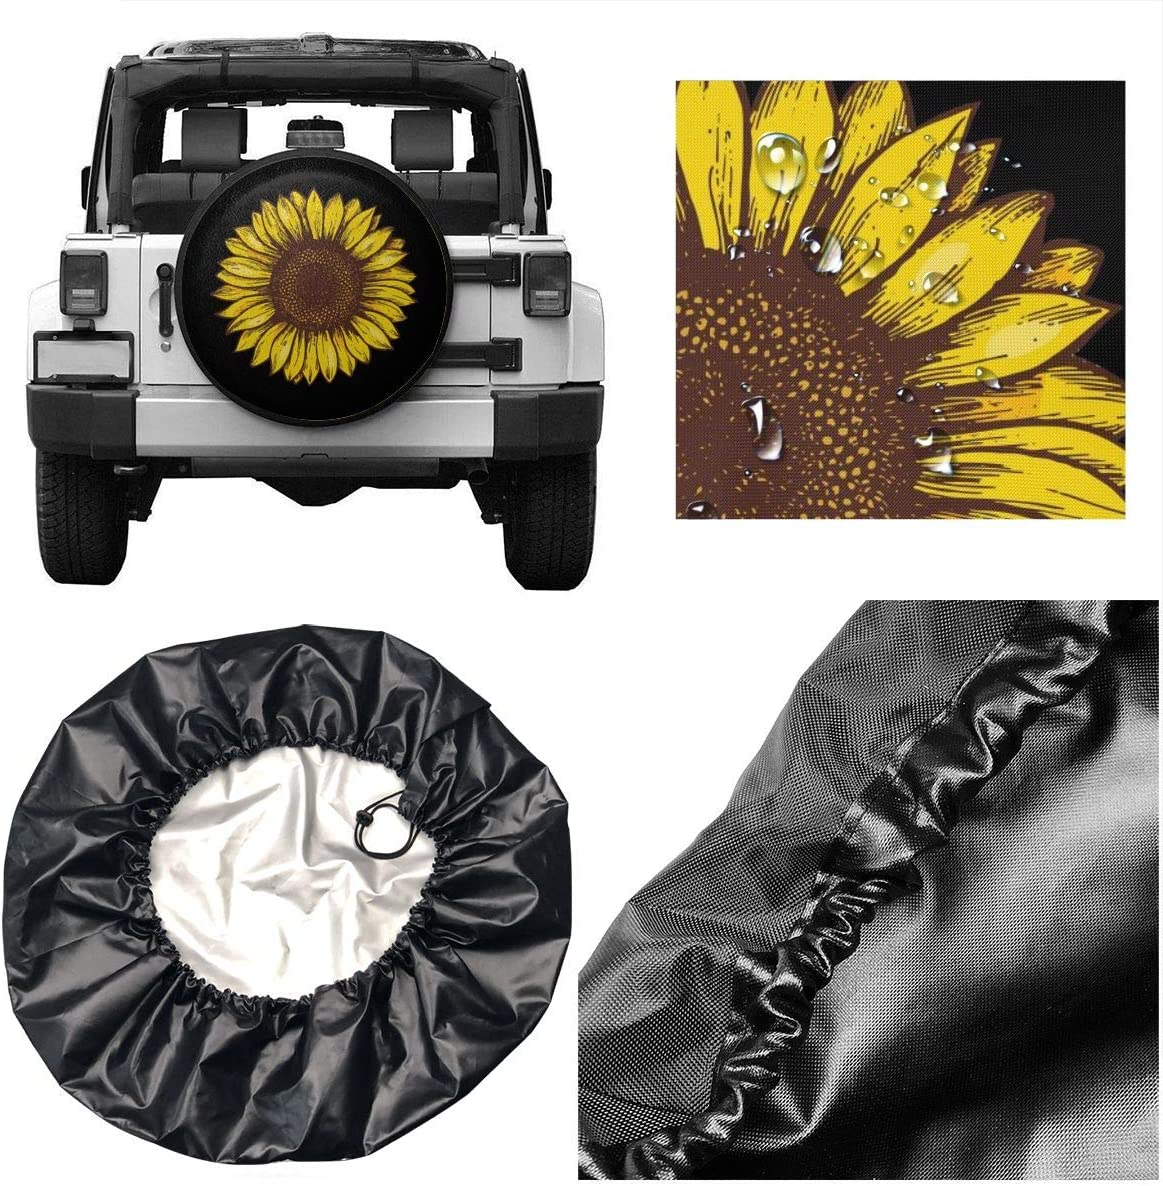 Dujiea 3D Ocean Dolphin Spare Tire Cover Universal Wheel Tire Cover Waterproof Dust-Proof Tire Protectors for Jeep Trailer Rv Van SUV Truck Camper and Many Vehicle 14 15 16 17 Inch